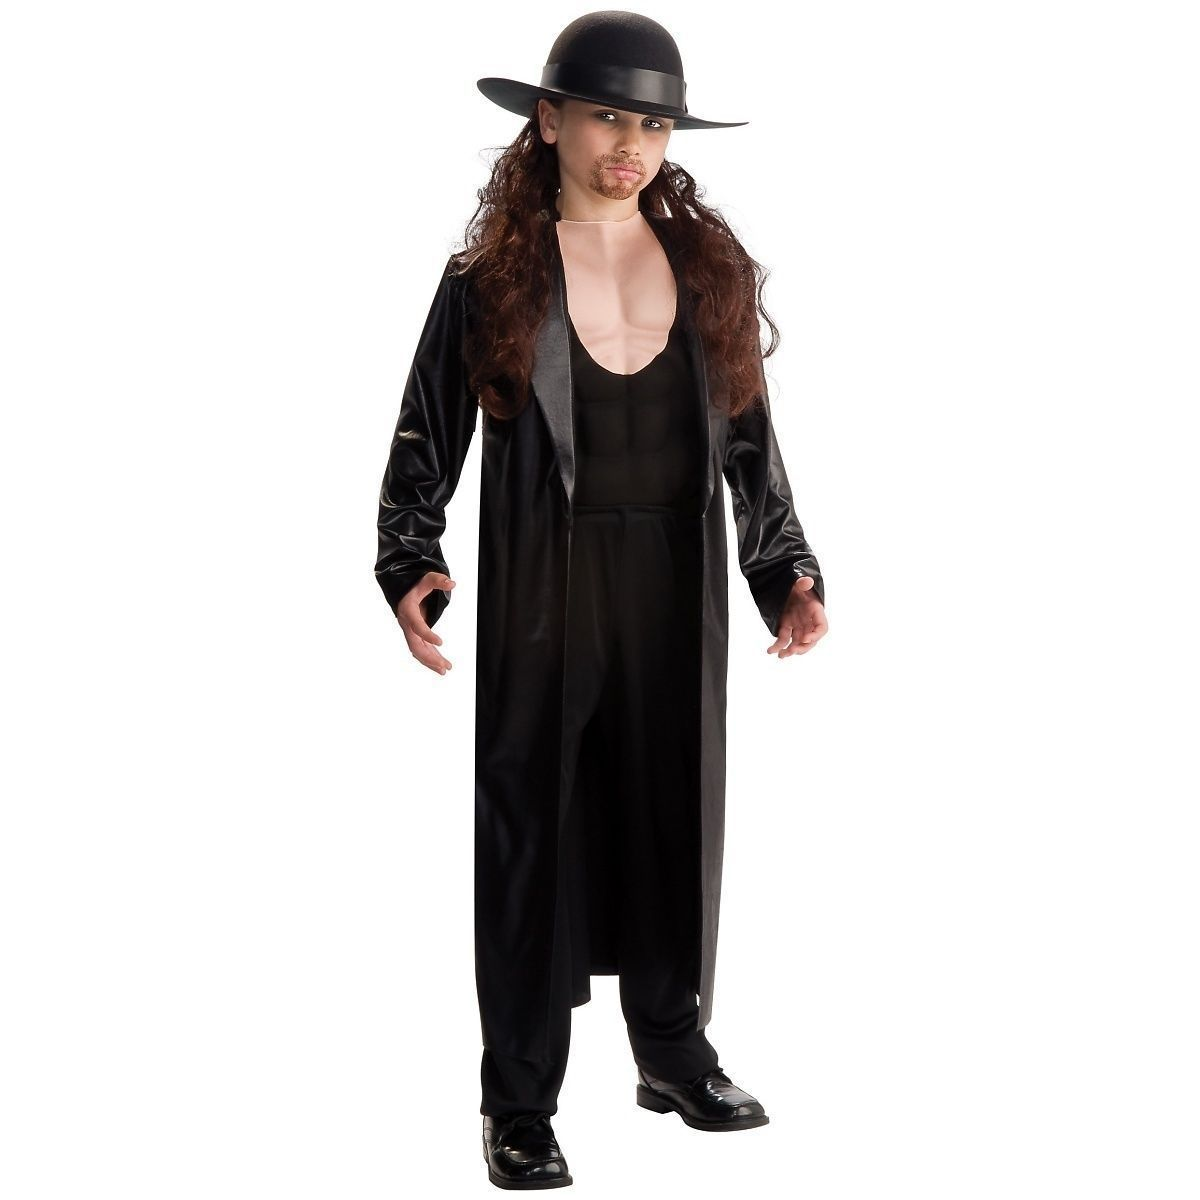 Primary image for Undertaker Costume Kids WWE Wresting Halloween Play Costume Free Shipping